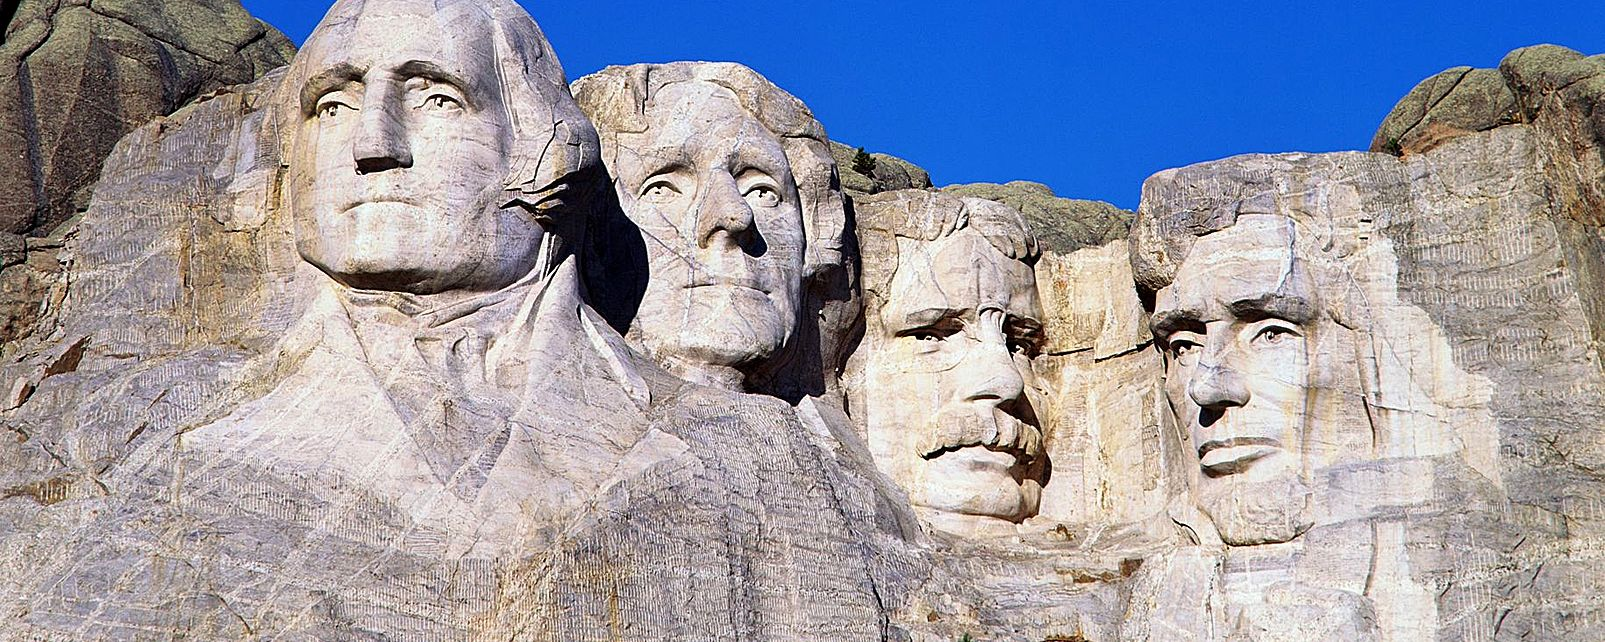 Mont Rushmore , United States of America